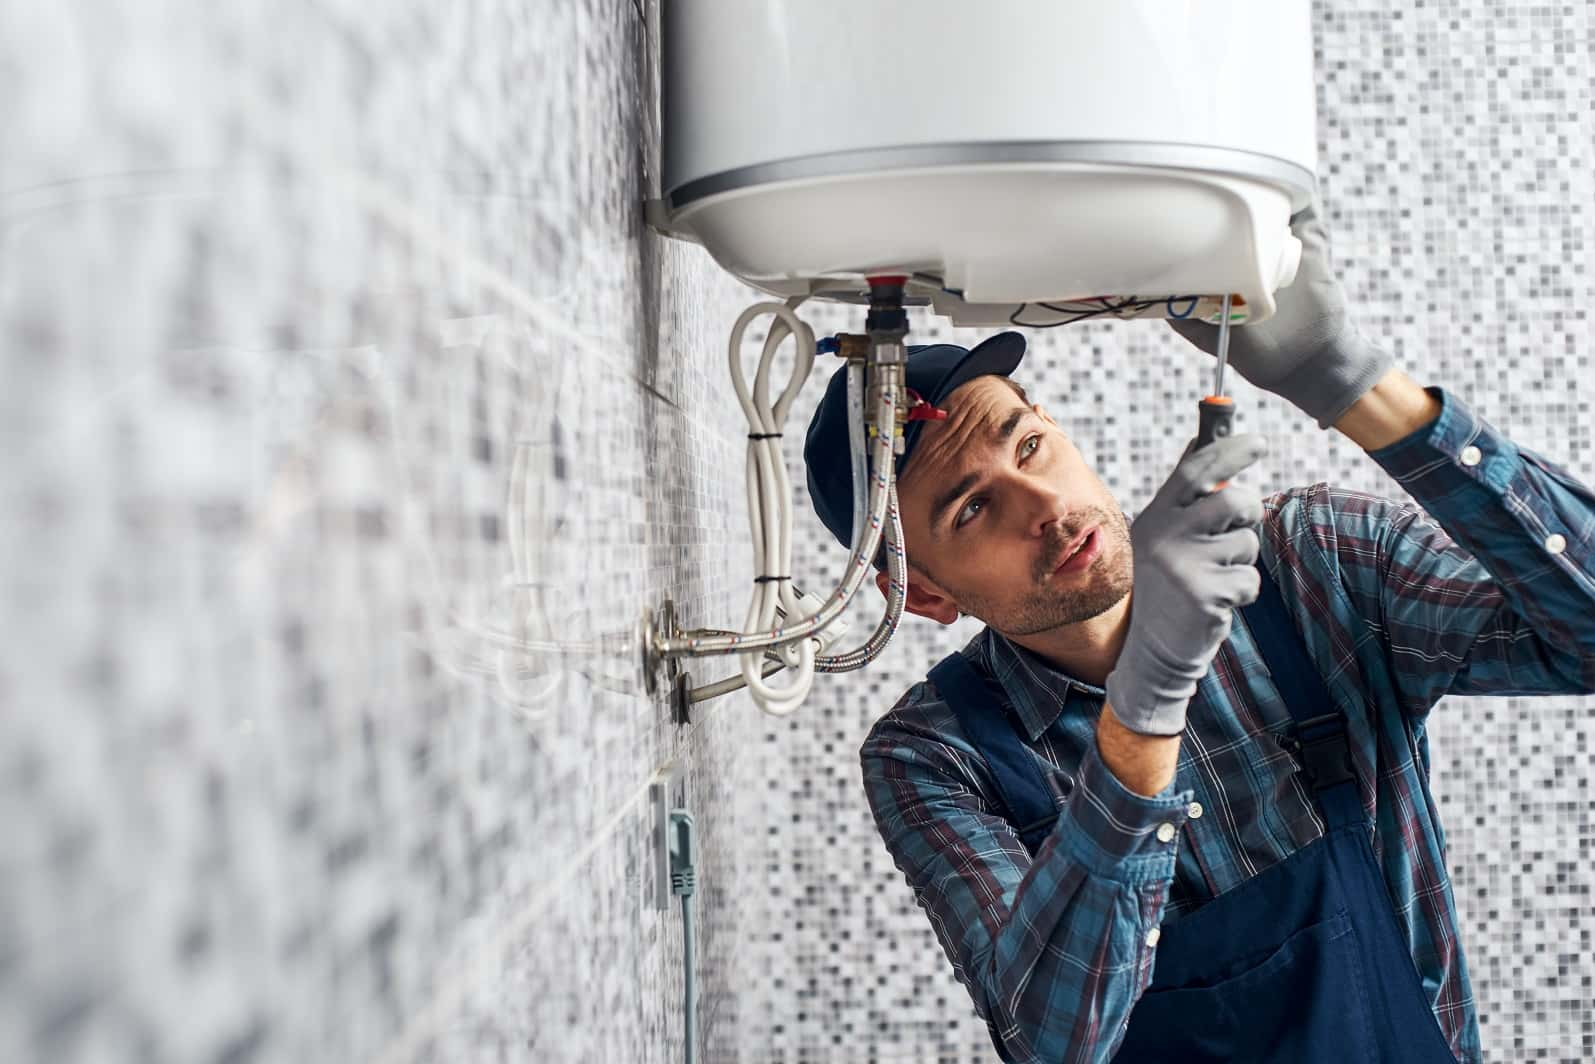 5 Construction Myths On Water Heating Services You Shouldn't Believe. Mounting the tank and water pipes